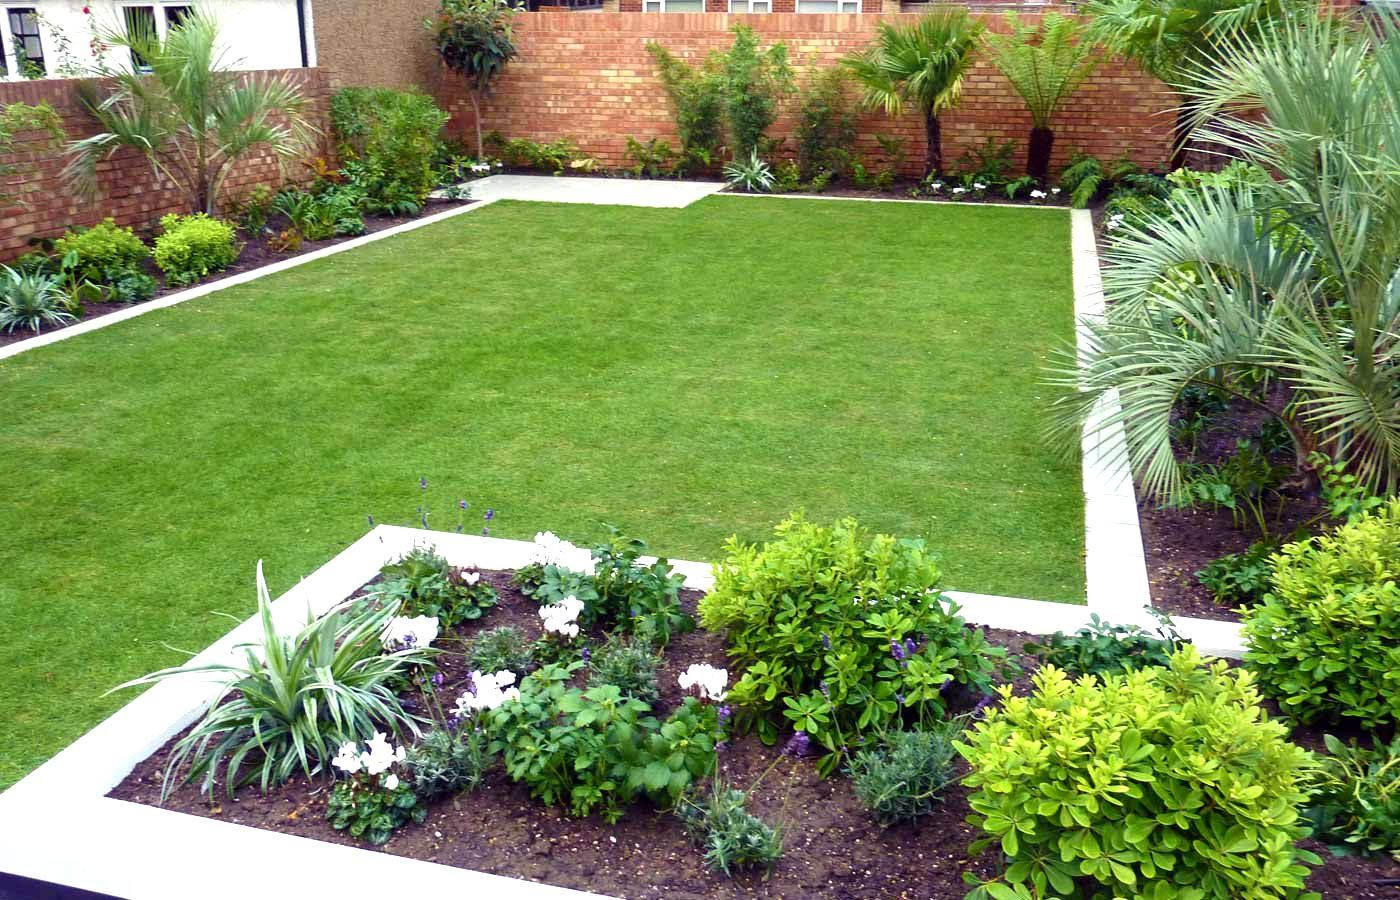 Simple garden designs no fret small garden design for Landscape design plans